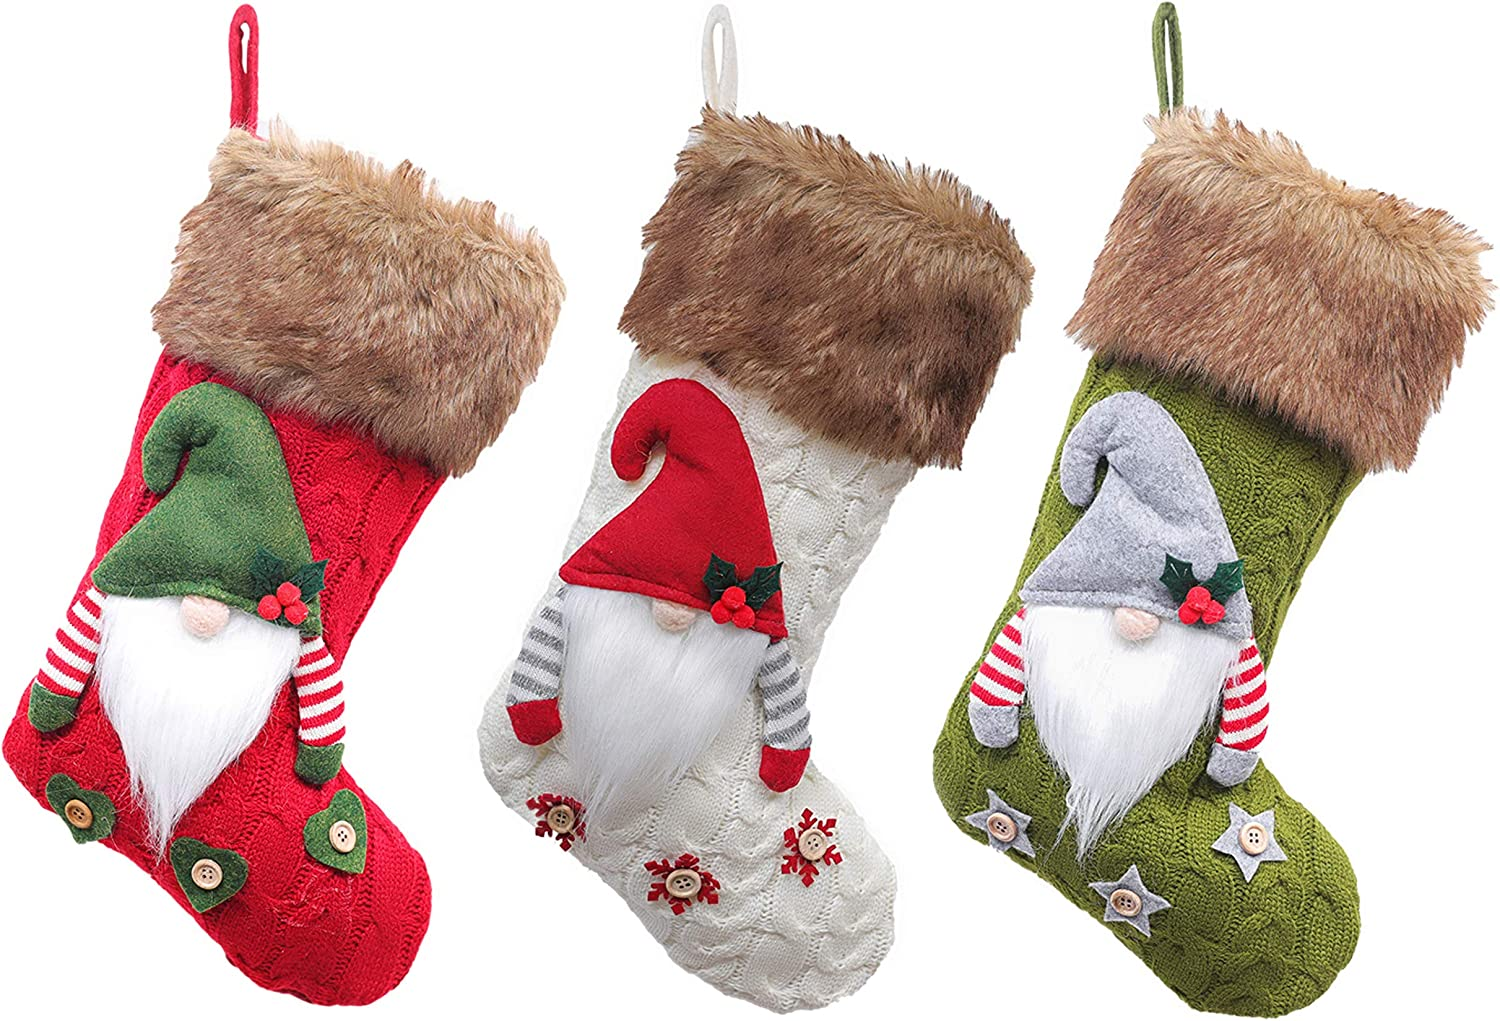 Aucess Large Christmas Decoration Stockings Gnome Santa Pattern Ornaments for Christmas Tree—Pack of 3